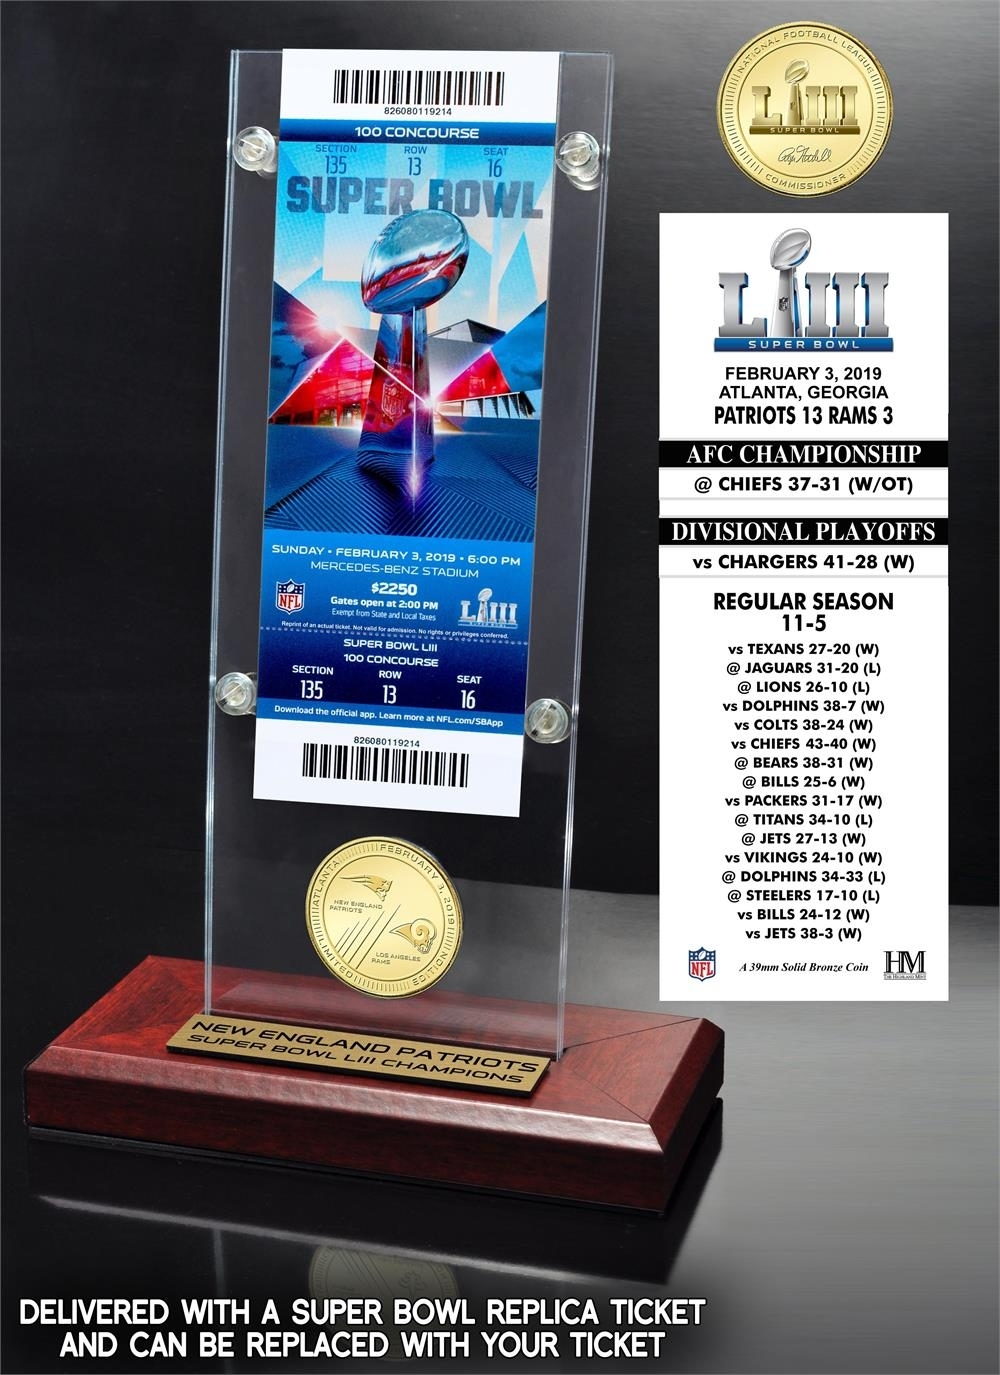 New England Patriots Super Bowl 53 Champions Bronze Coin with regard to Super Bowl 53 Ticket Prices